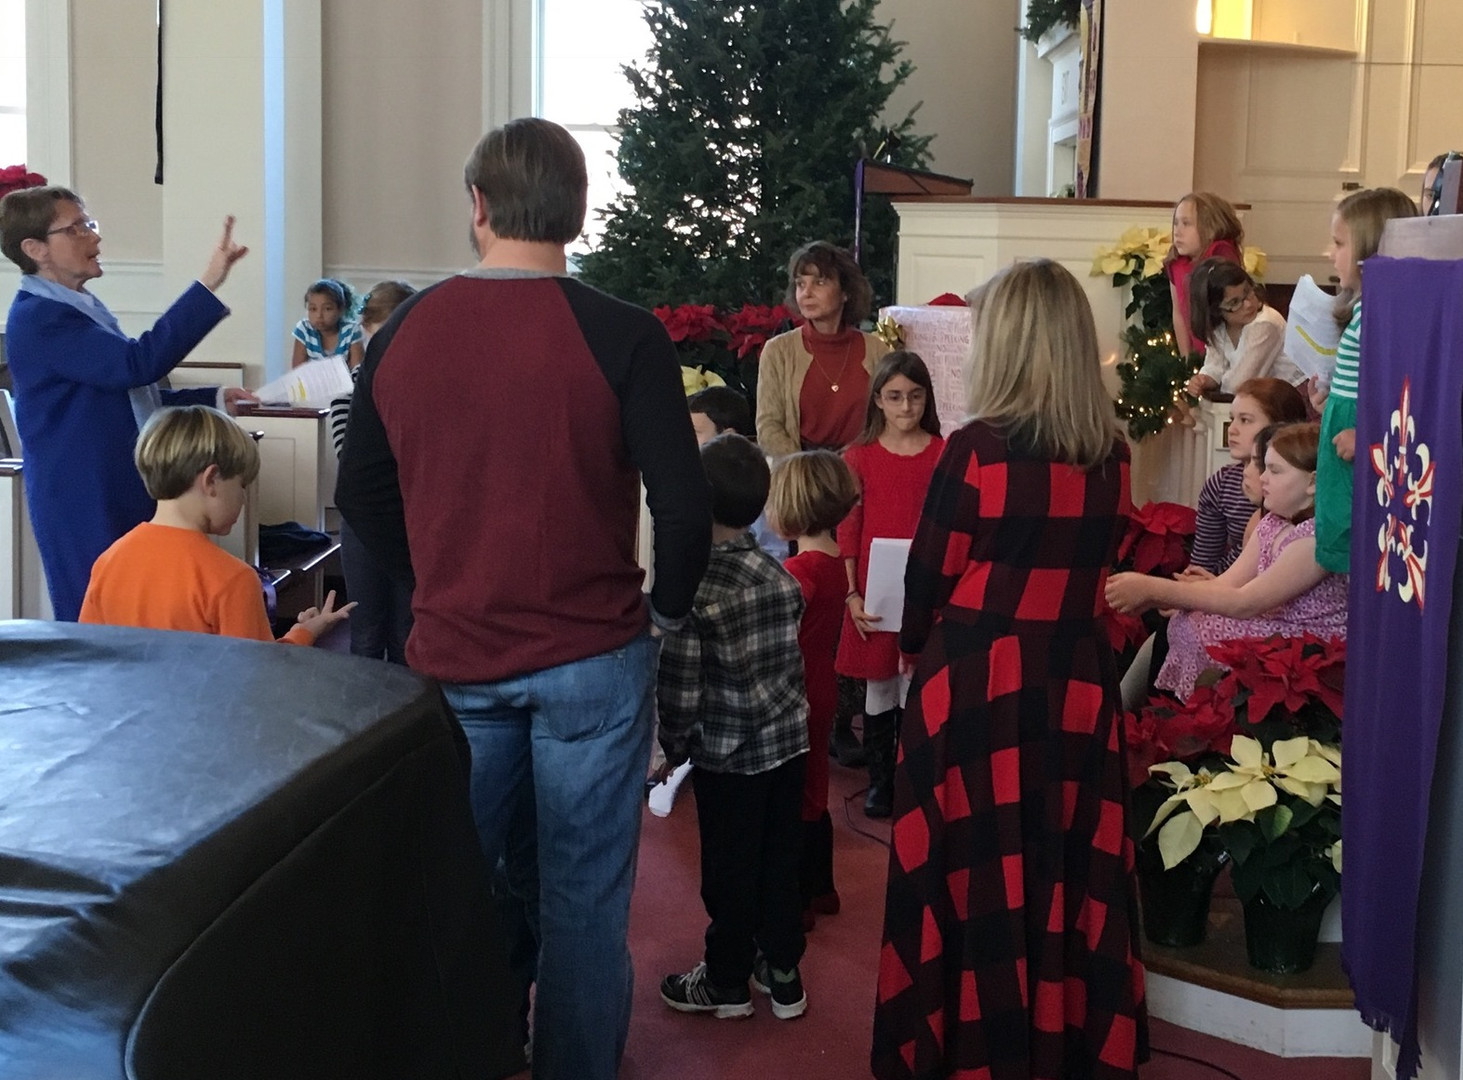 Children's time during service